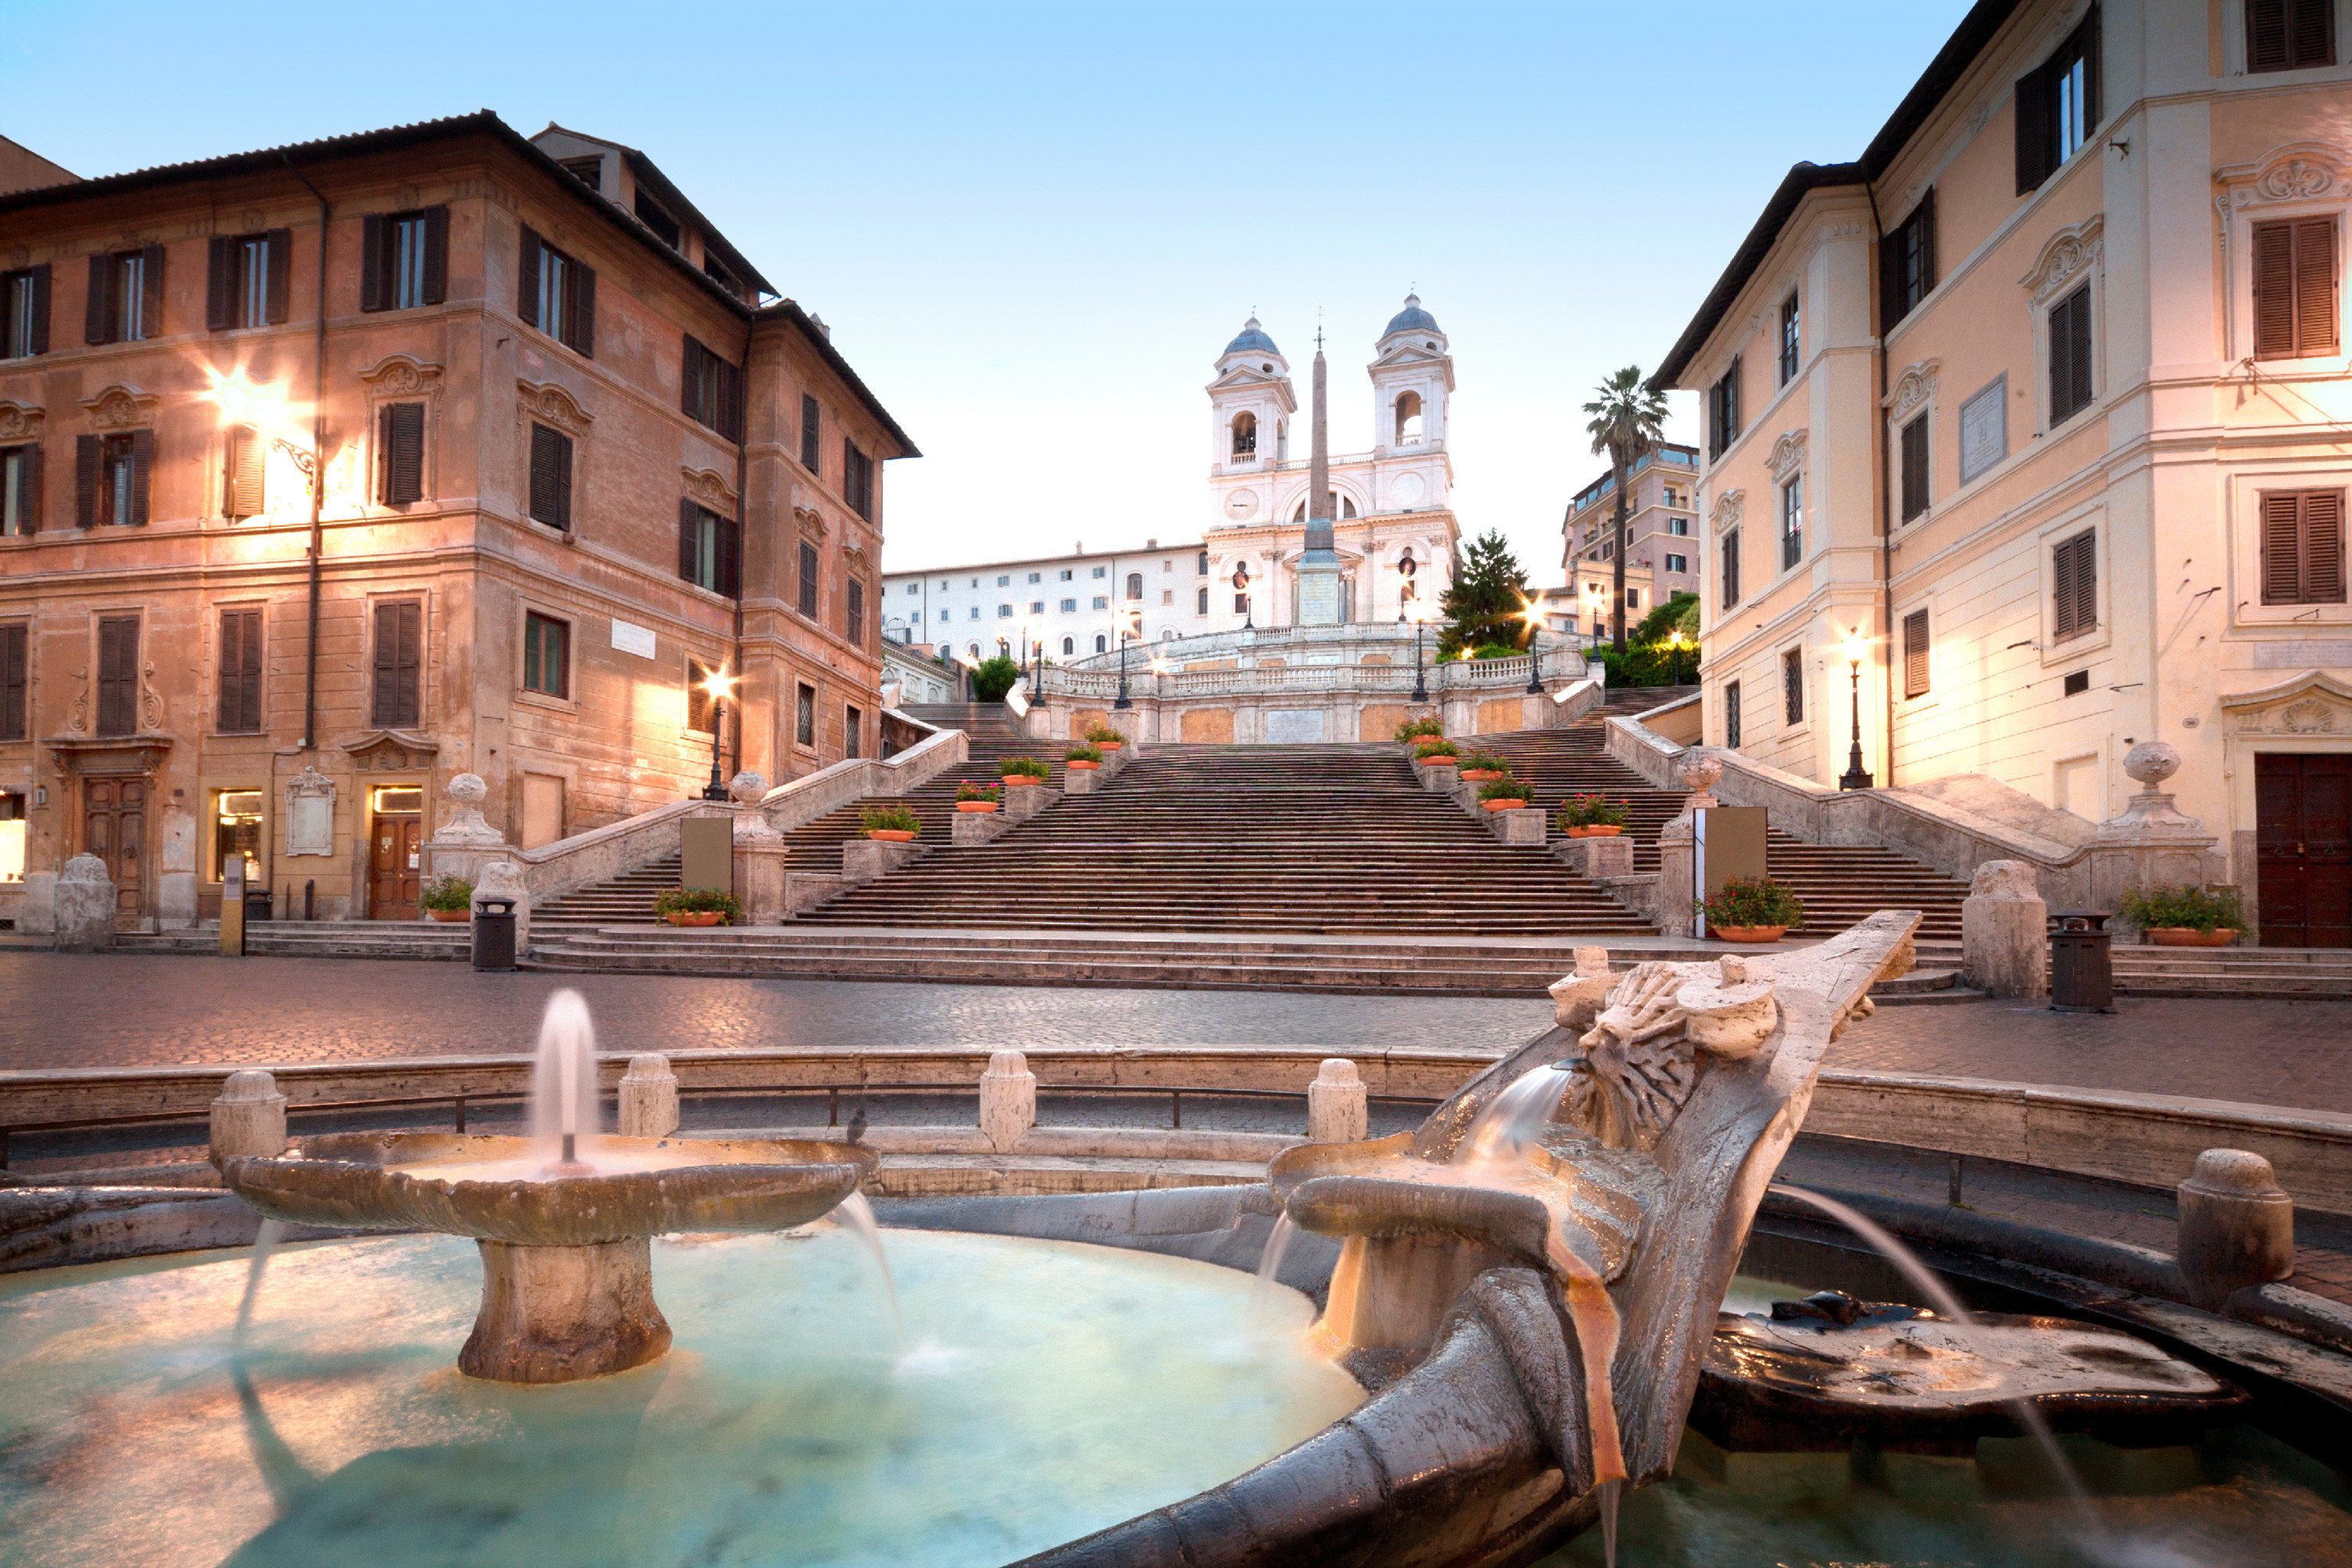 B&B Buildings City Landmarks Monuments building landmark Town plaza old palace thermae waterway Courtyard ancient rome town square water feature